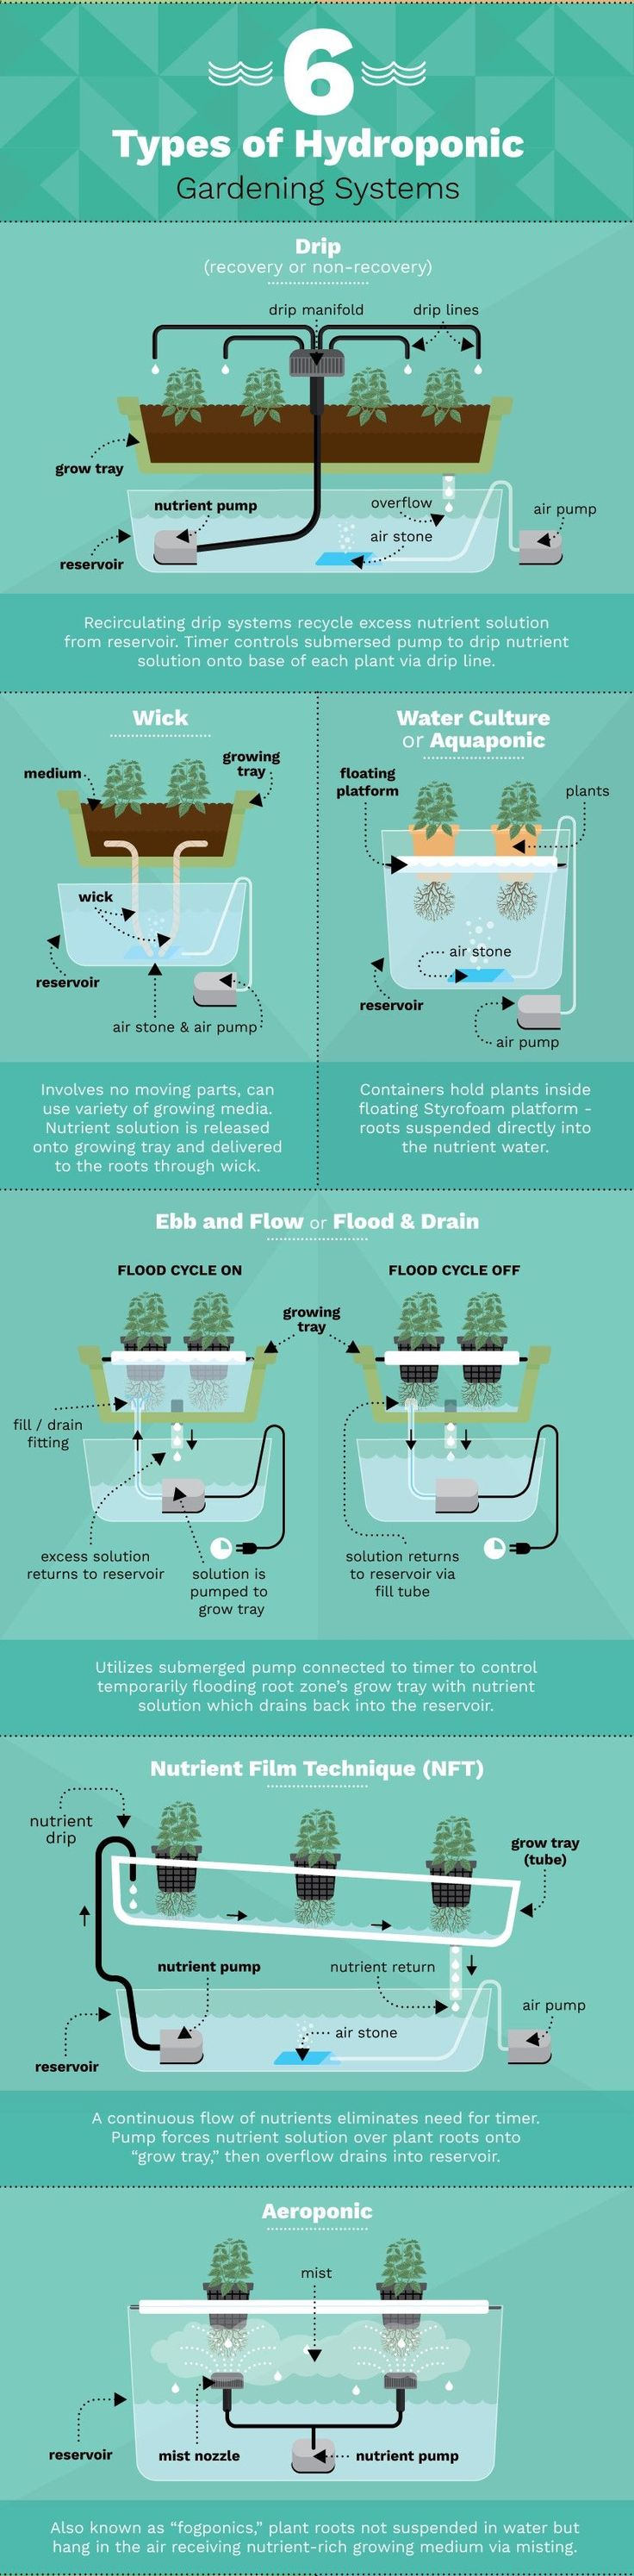 Aquaponics System - Six types of hydroponic gardening systems Break-Through Organic Gardening Secret Grows You Up To 10 Times The Plants, In Half The Time, With Healthier Plants, While the Fish Do All the Work... And Yet... Your Plants Grow Abundantly, Taste Amazing, and Are Extremely Healthy